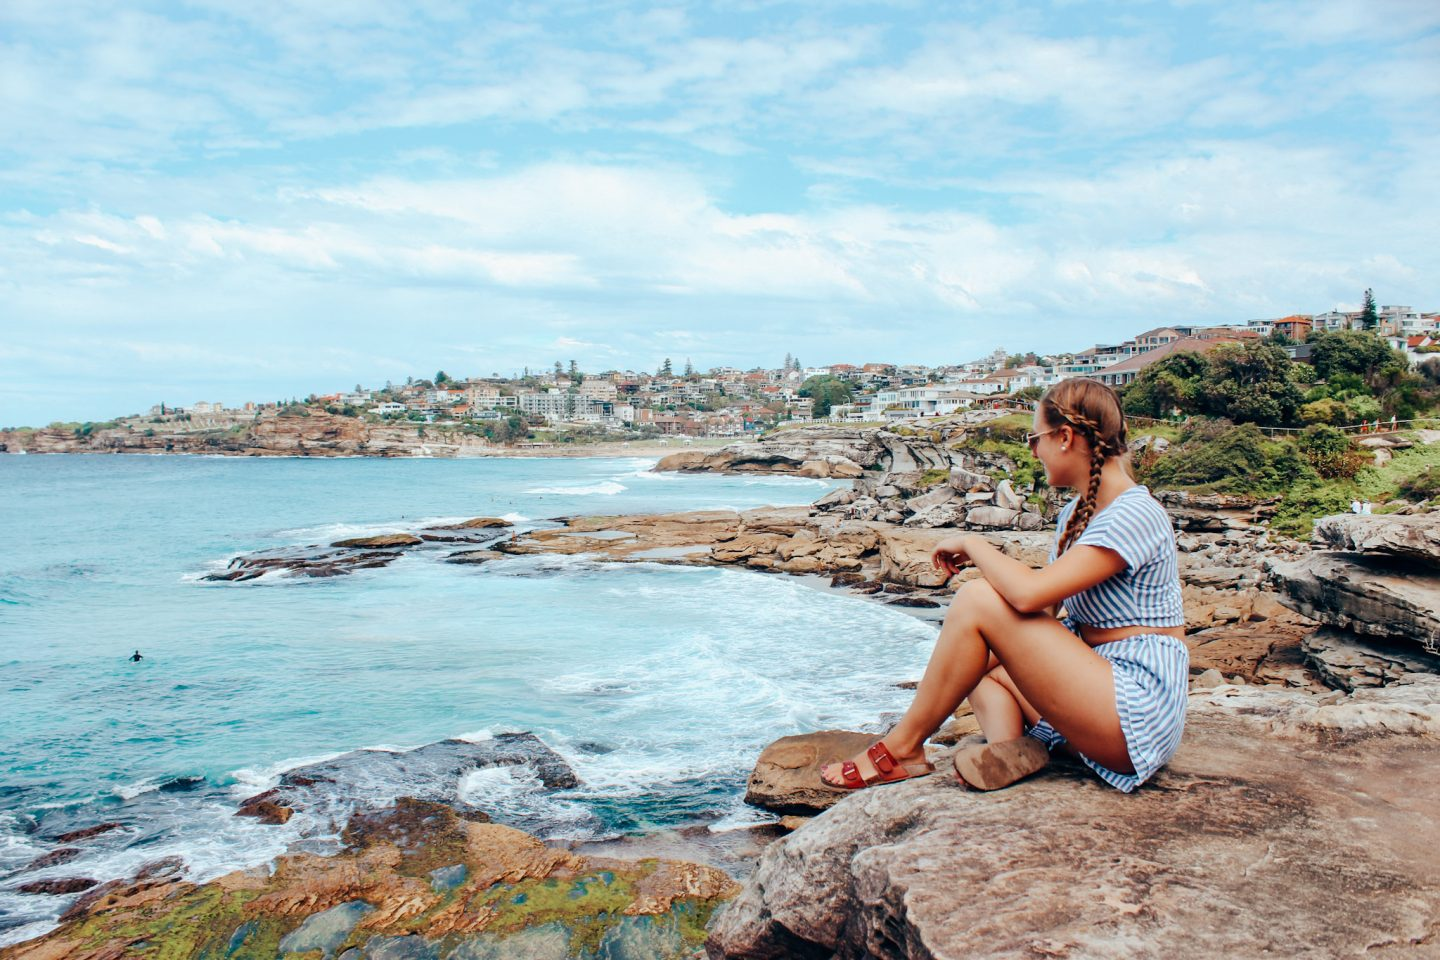 Bondi to Coogee coastal walk in Sydney